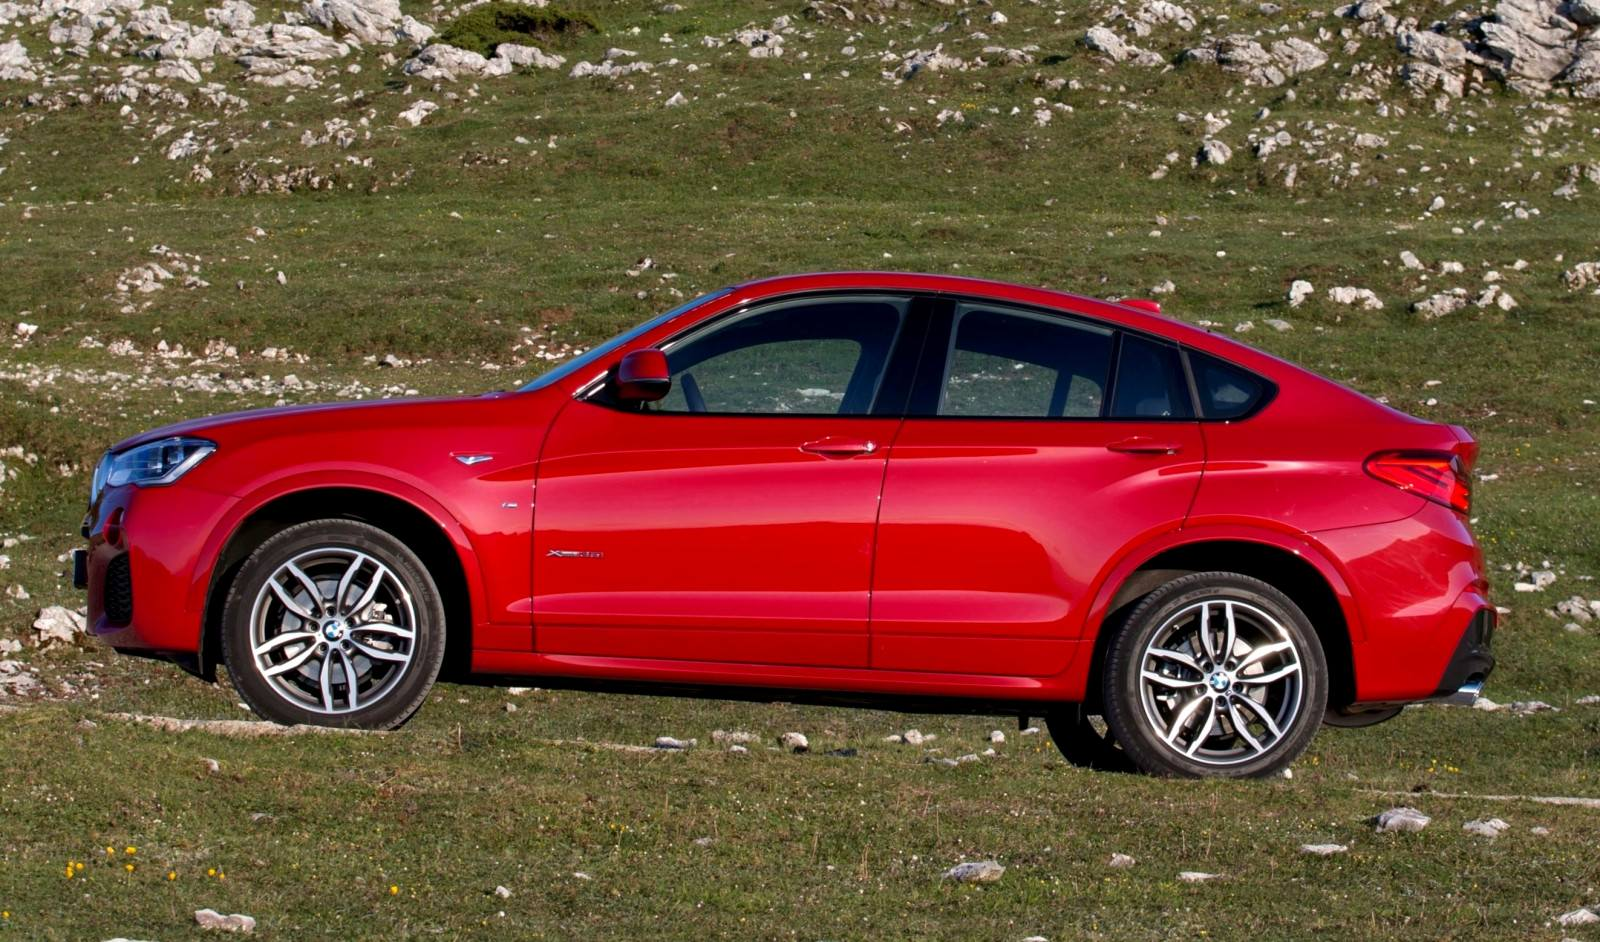 Update2 Debut Photos - 2015 BMW X4 Arriving Now to USA BMW Dealers 3